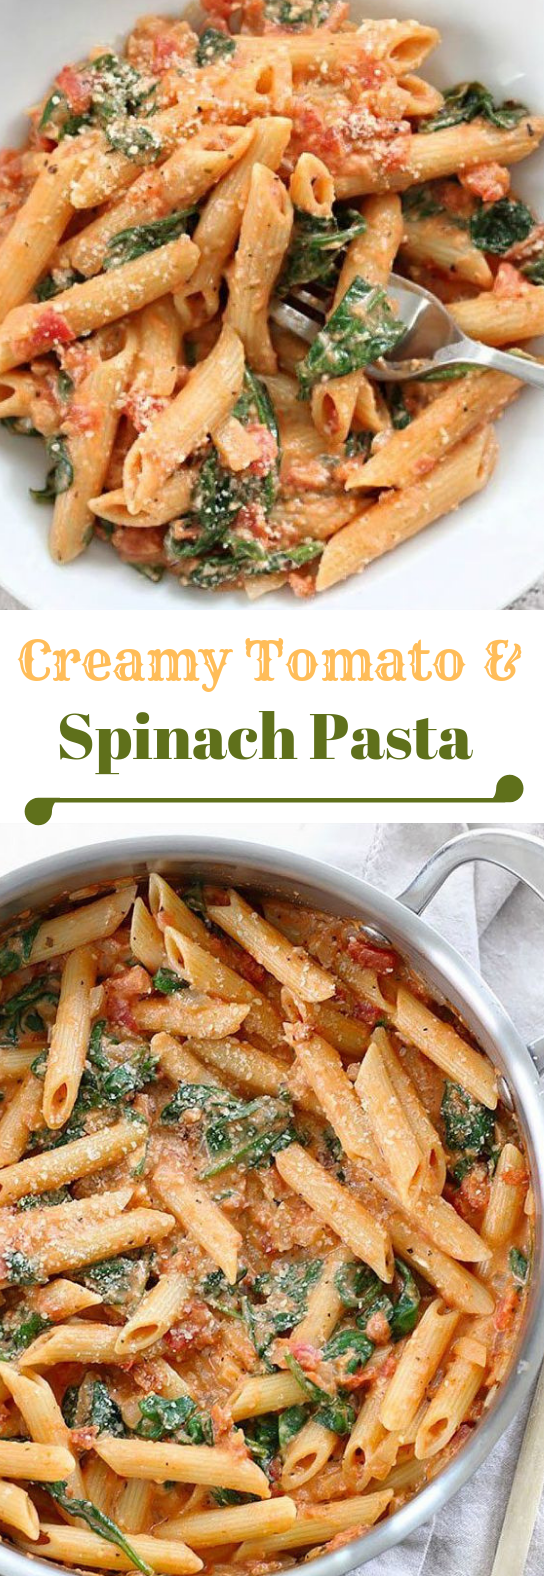 CREAMY TOMATO AND SPINACH PASTA #tomato #vegetable